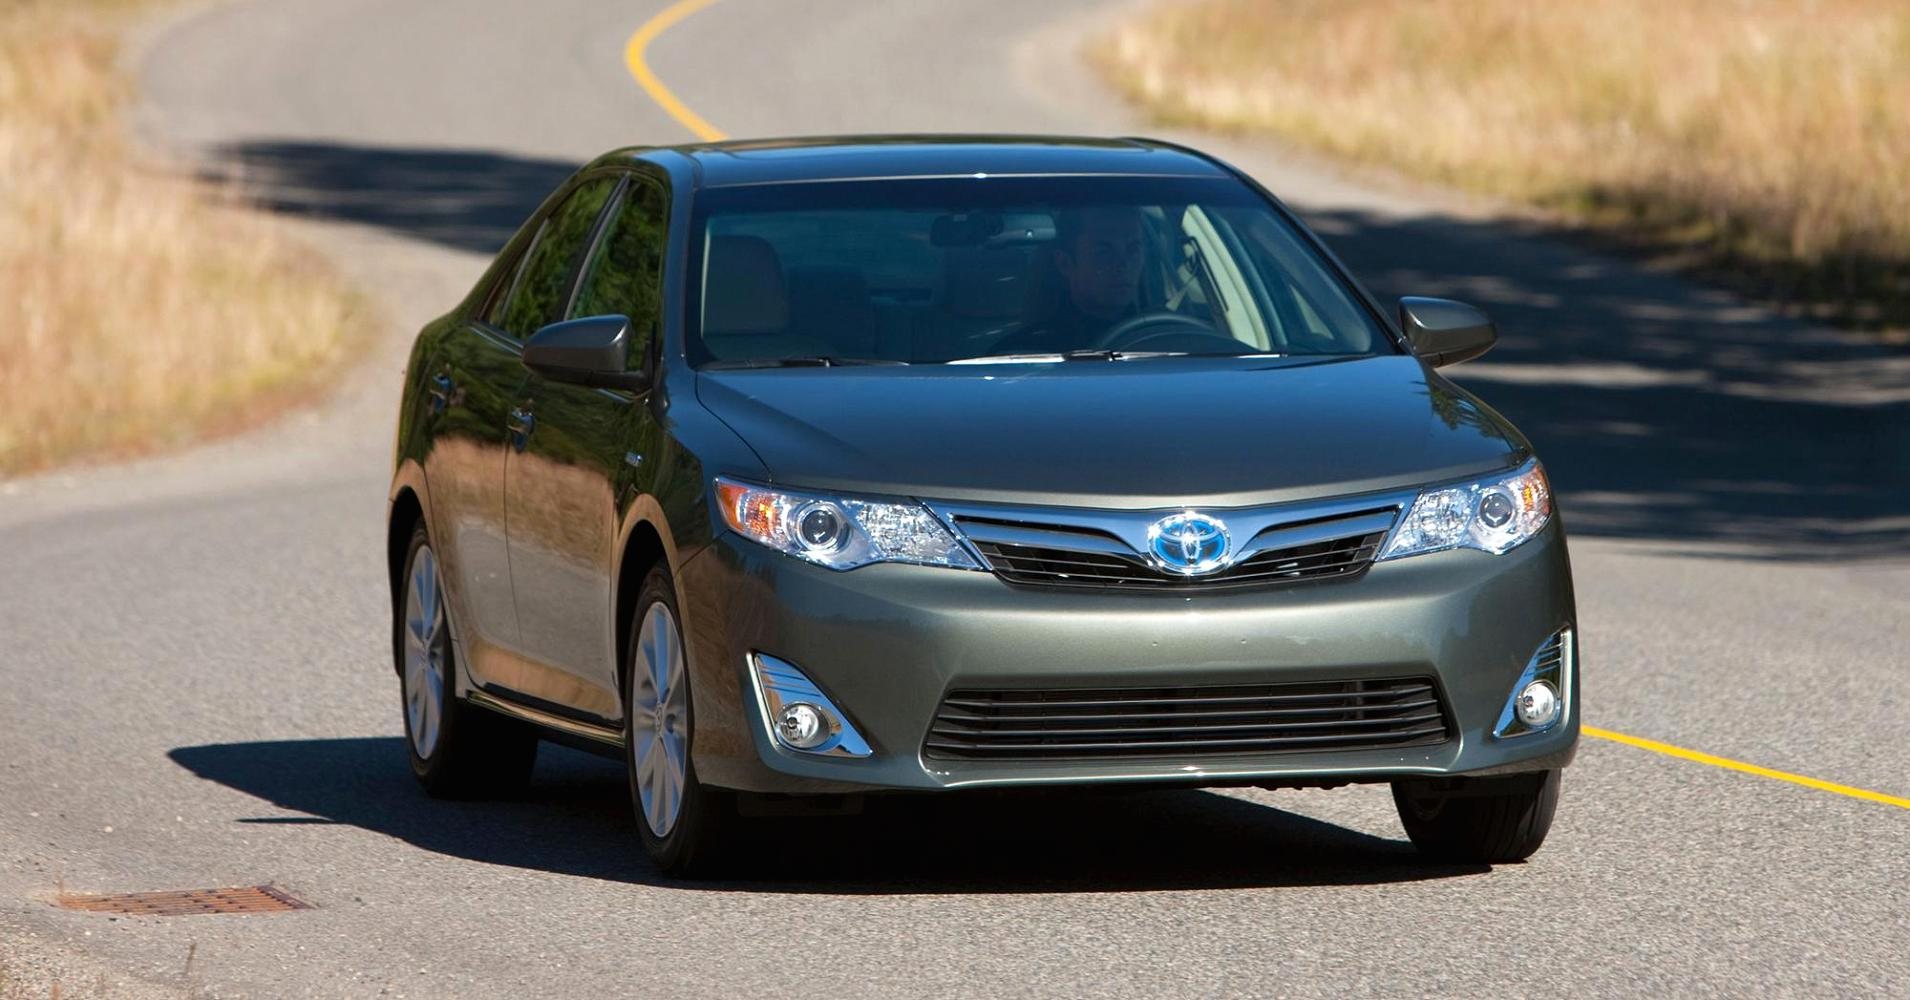 Consumer Reports' best value car for 2015 is...